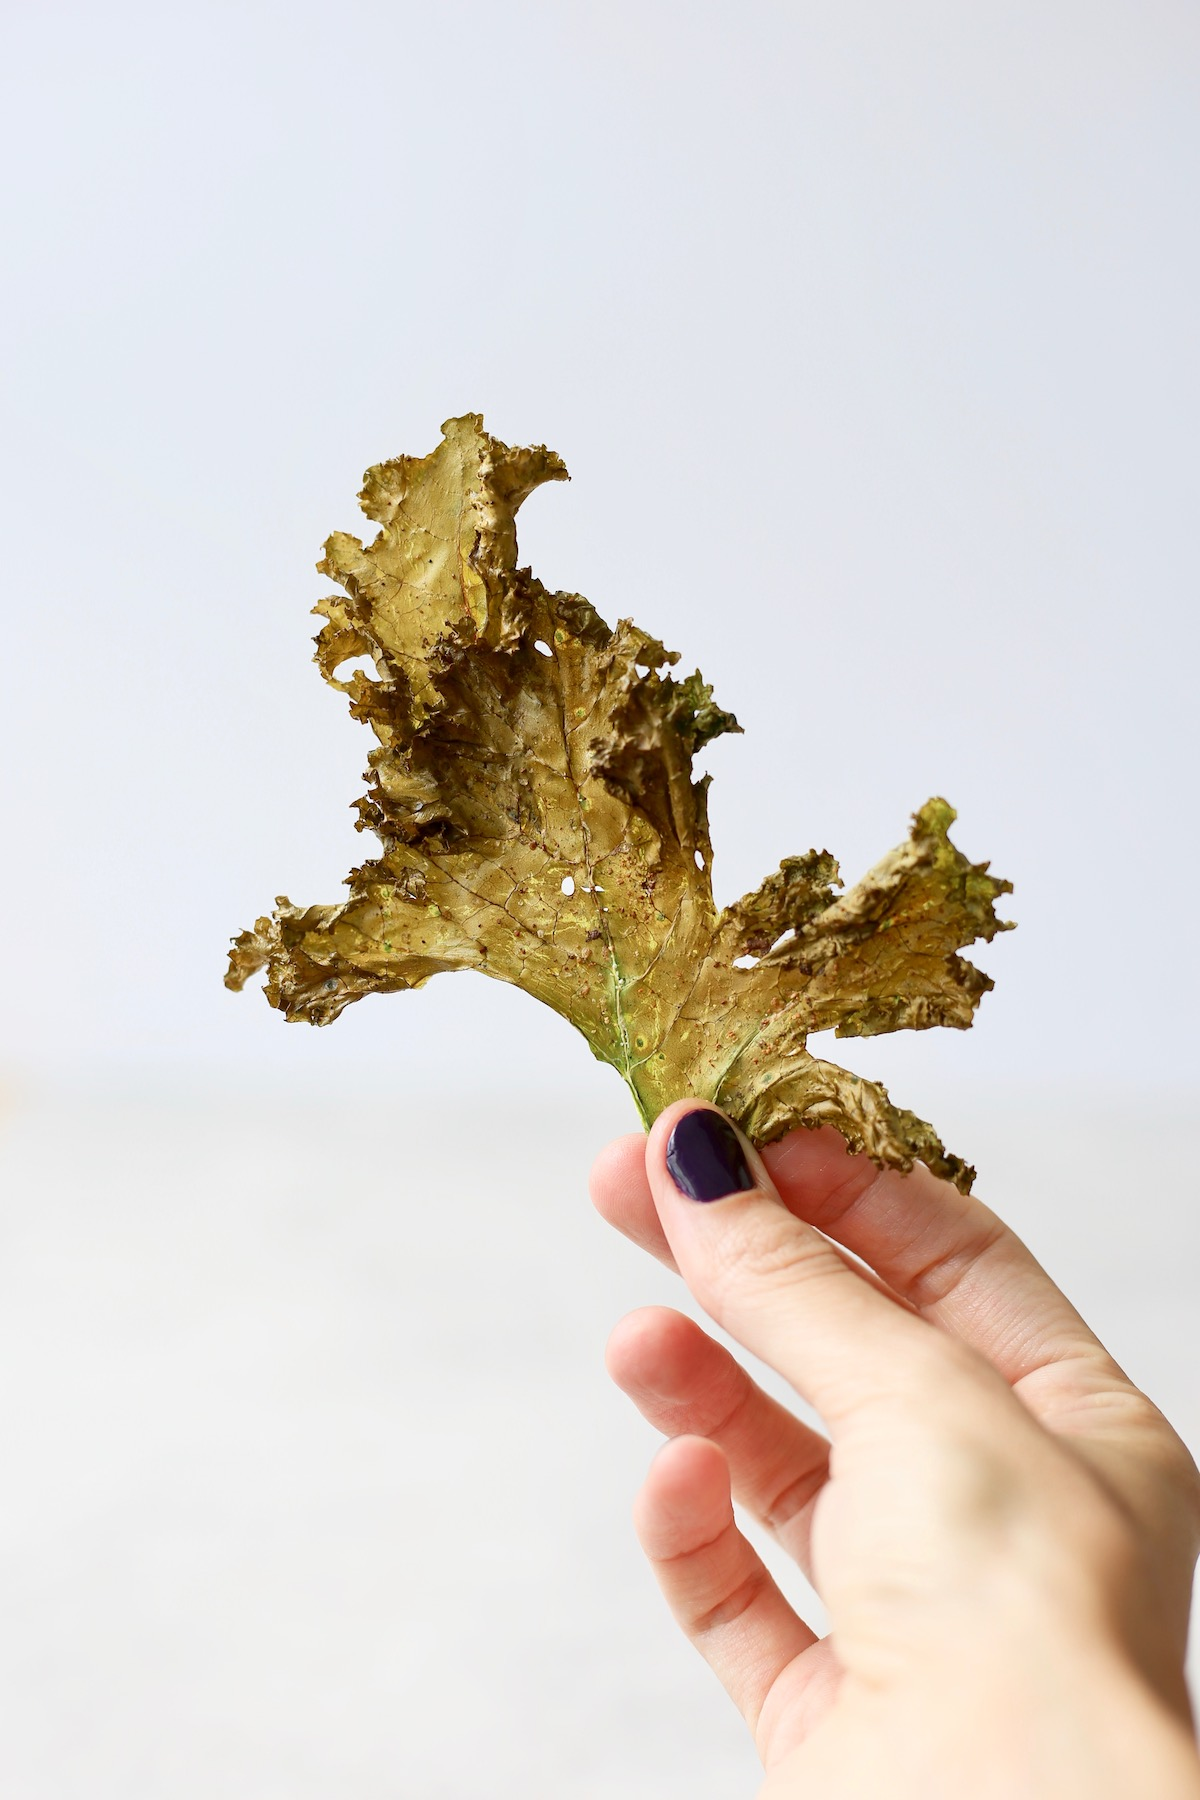 a hand holding up a large kale chip